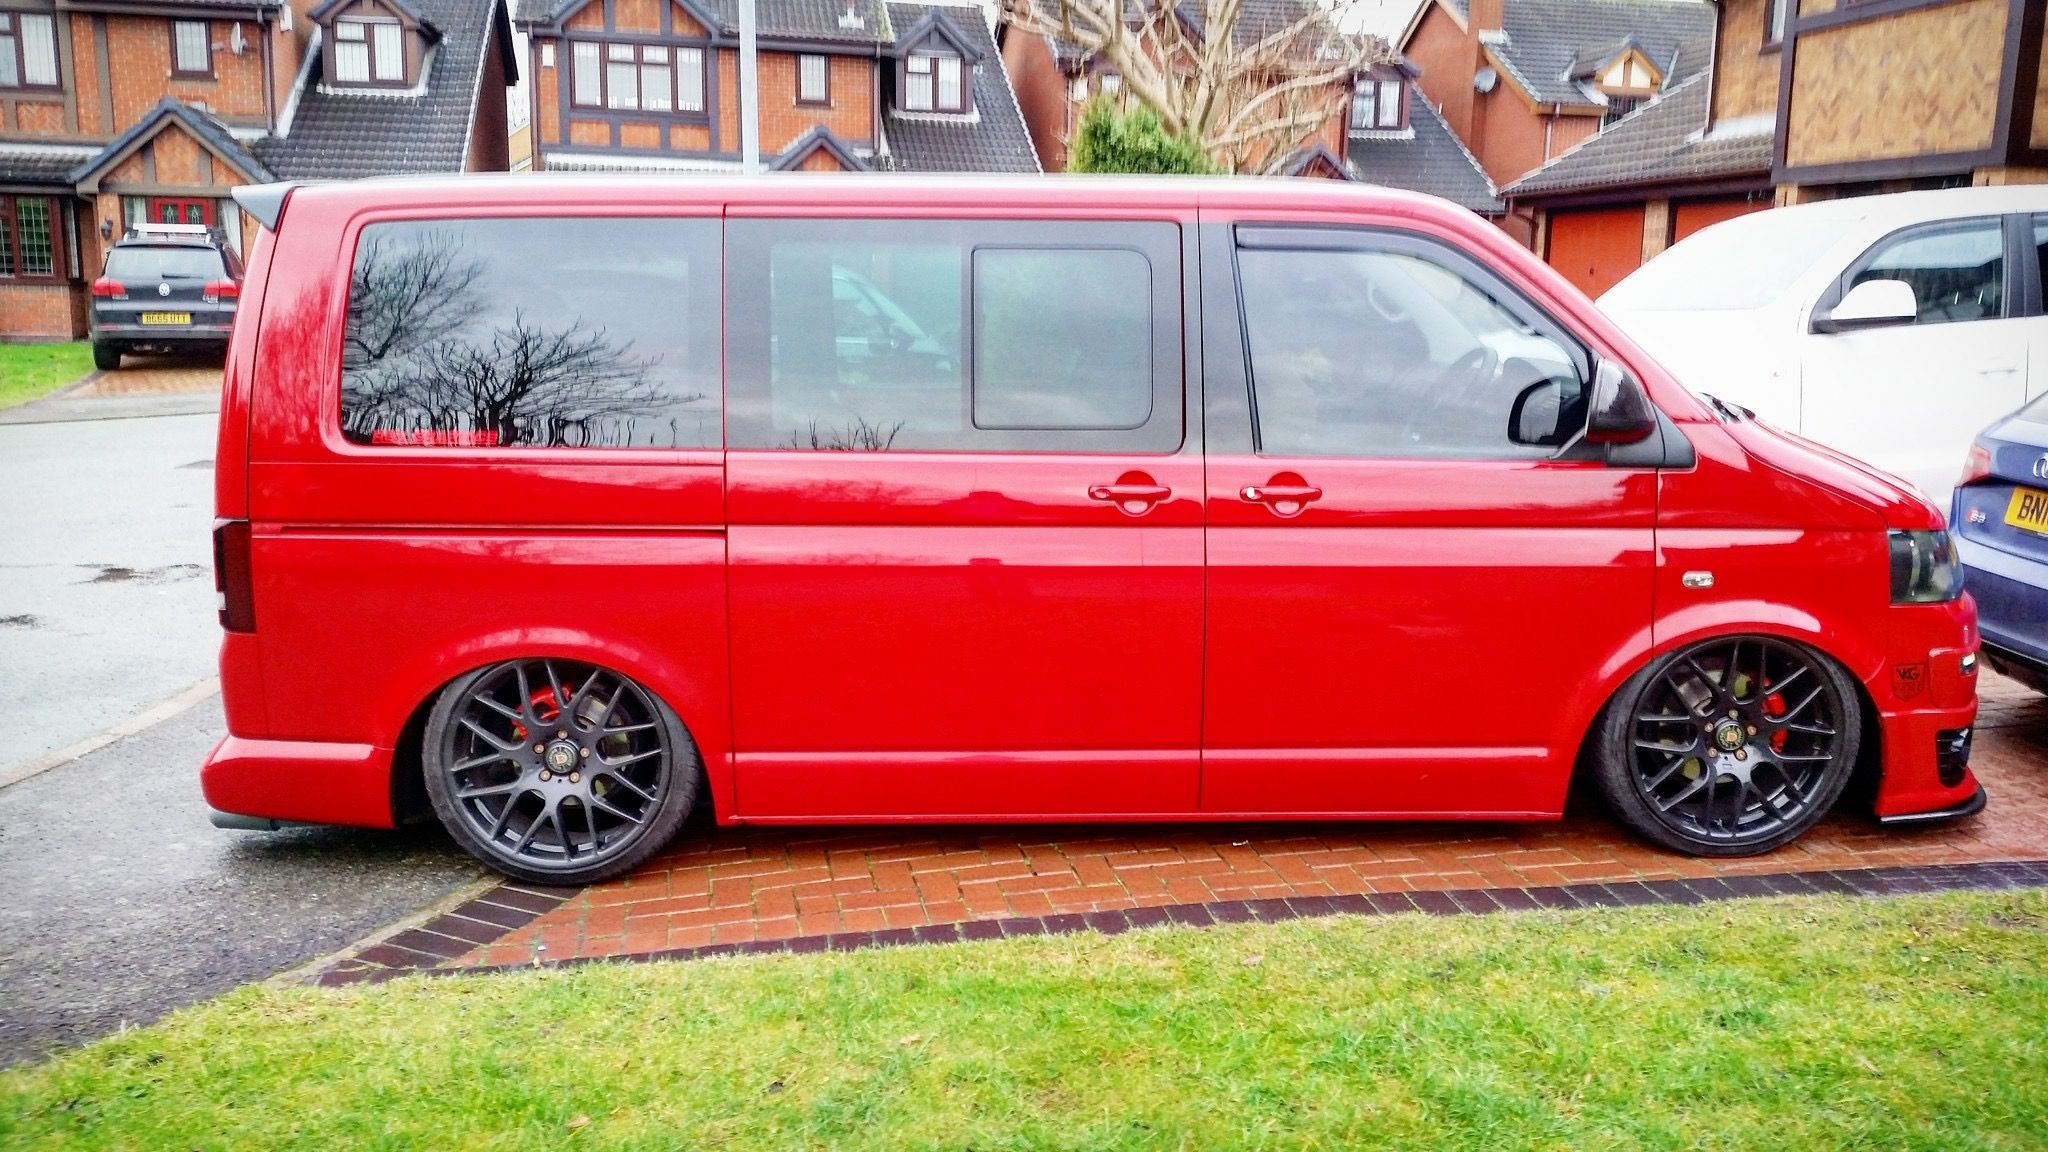 Air Ride Norwich Vw T5 4motion Air Ride Bagged Slammed Cars And Motorcycles